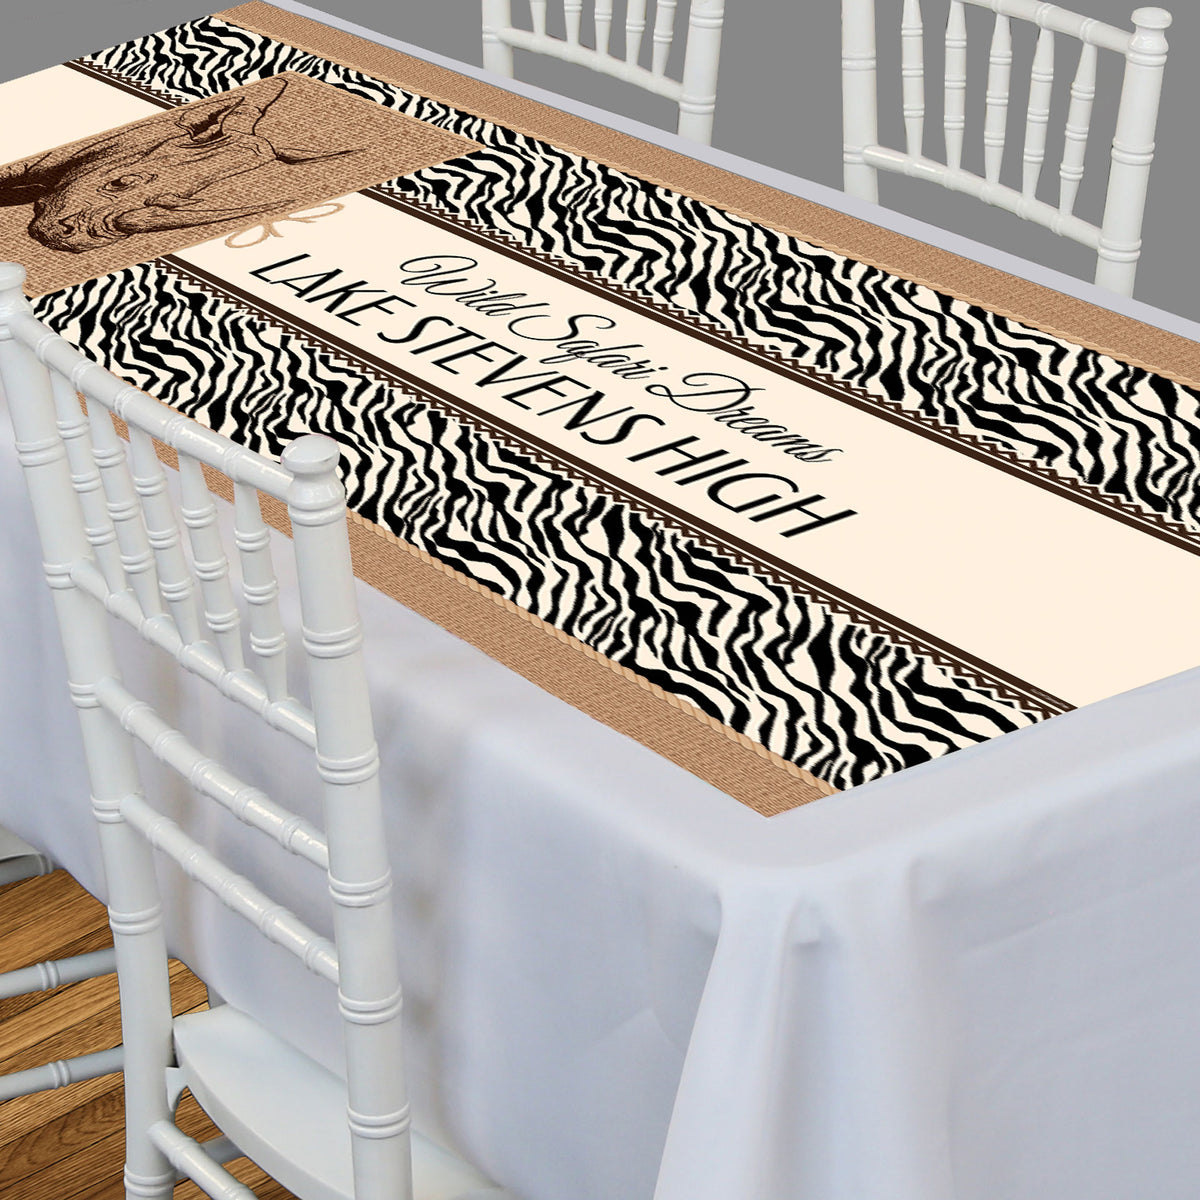 Wild Safari Dreams Rectangle Table Top-It